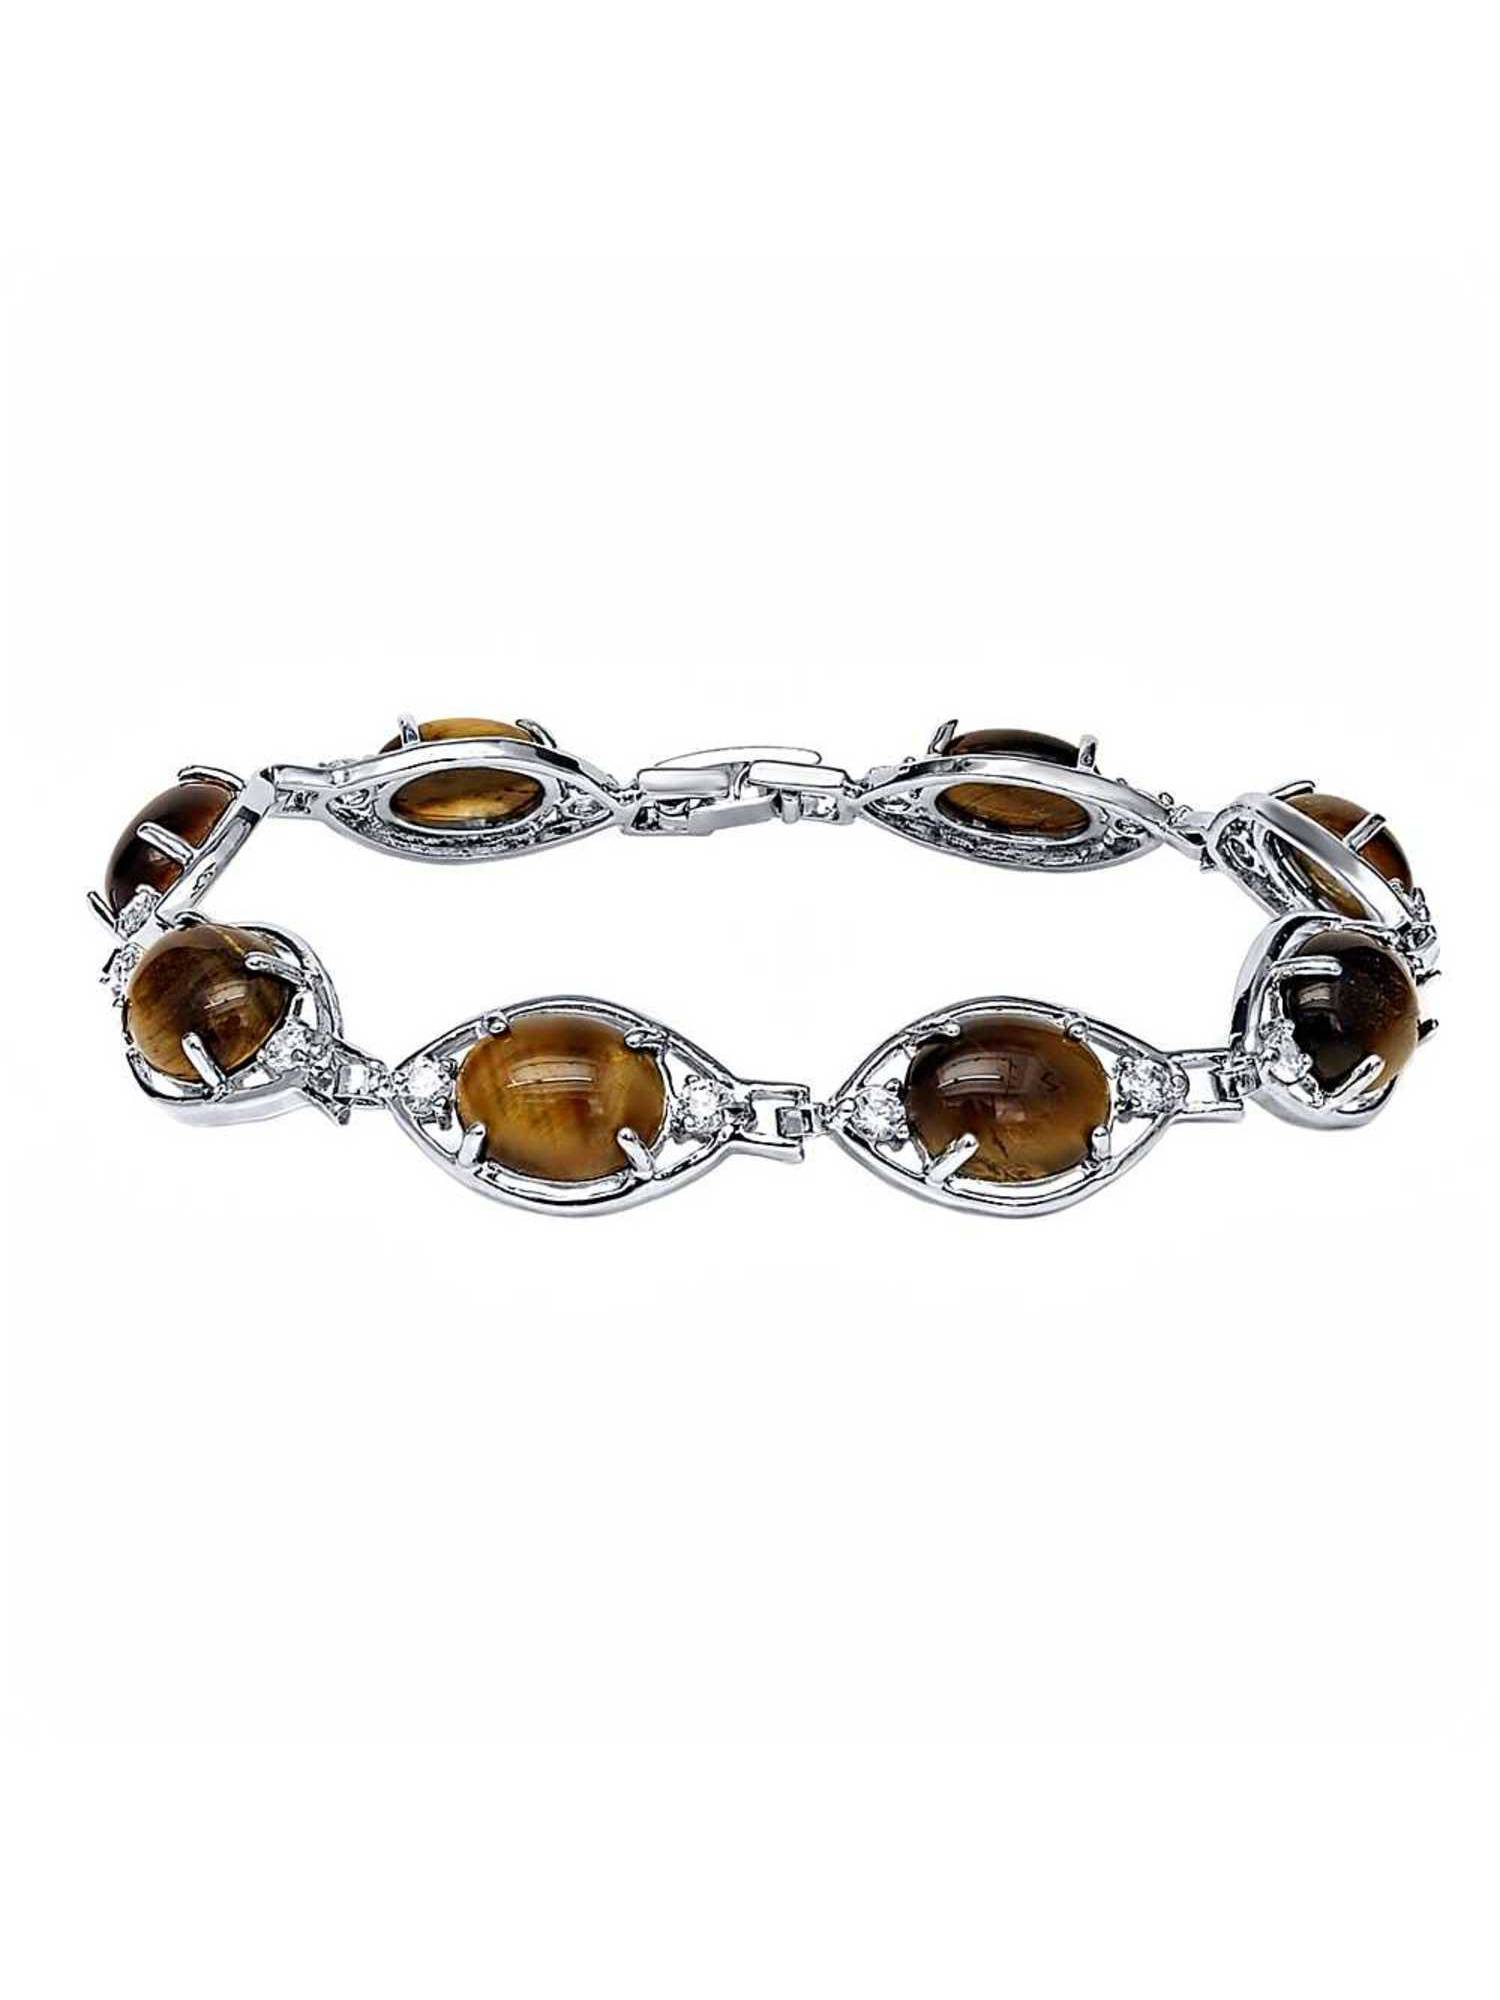 Beautiful Brown Tiger Eye Stone and Cubic Zirconia CZ 7 Inch Bracelet